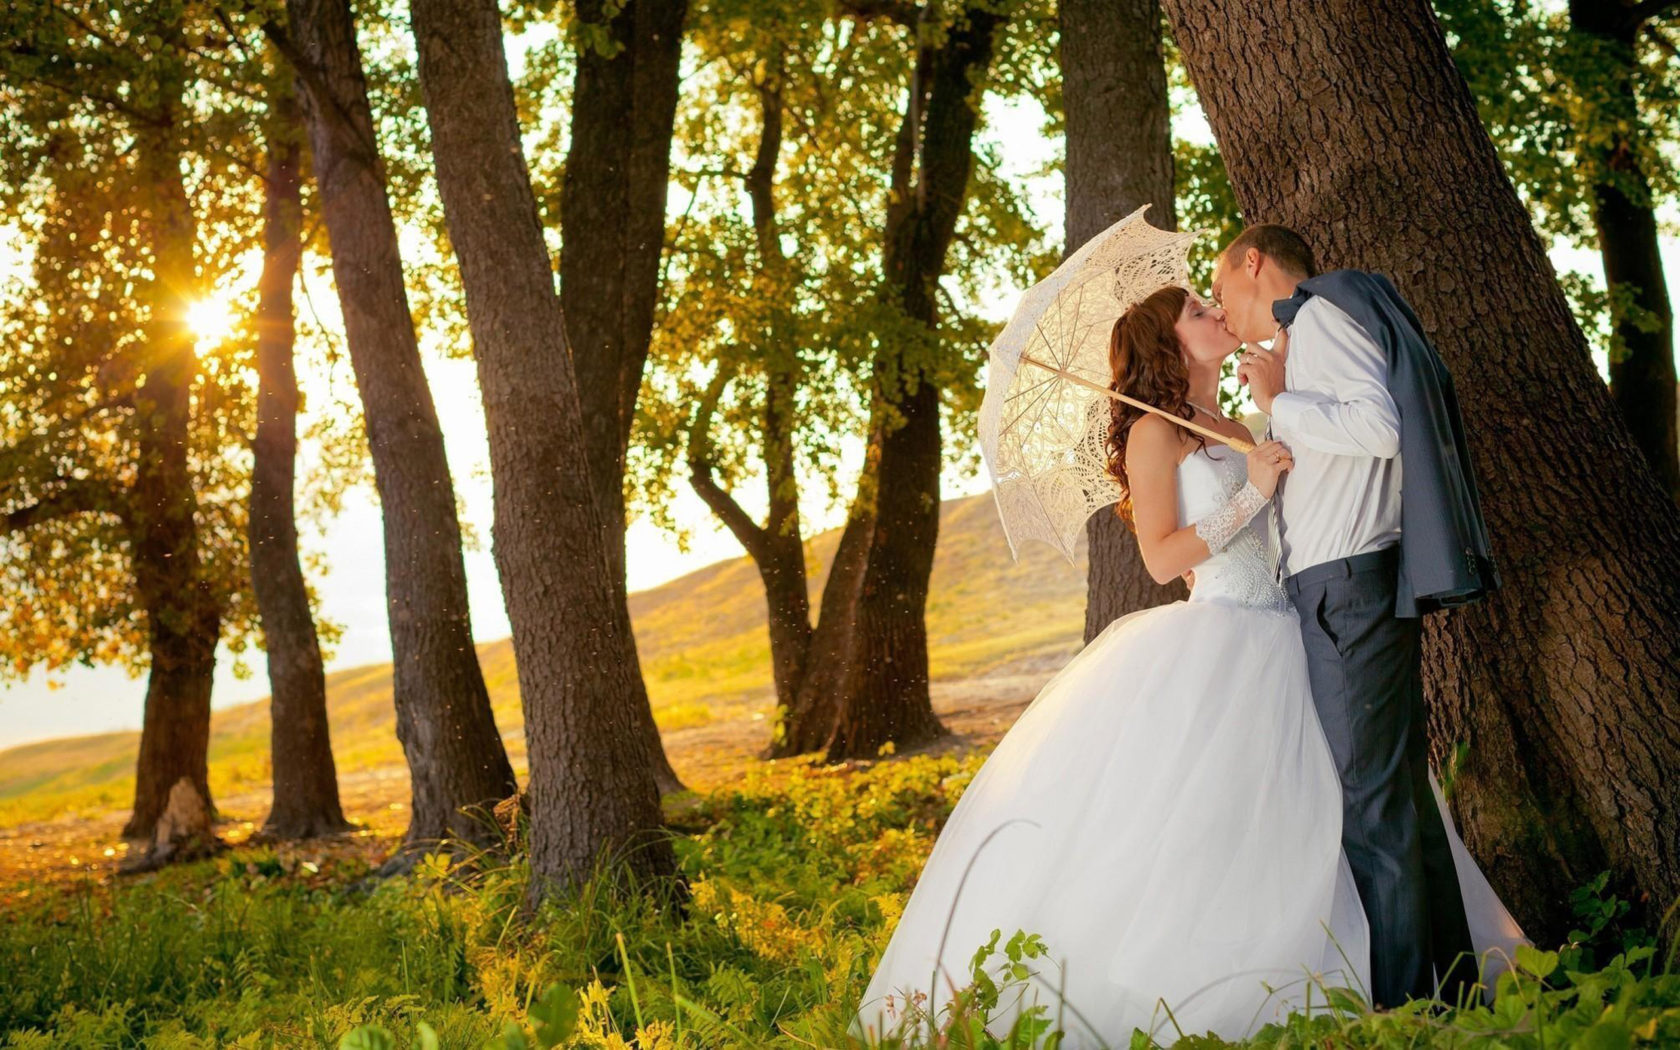 Cute Couples Holding Hands Hd Wallpapers Kissing Under Trees Romantic Couple Wallpaper Kissing